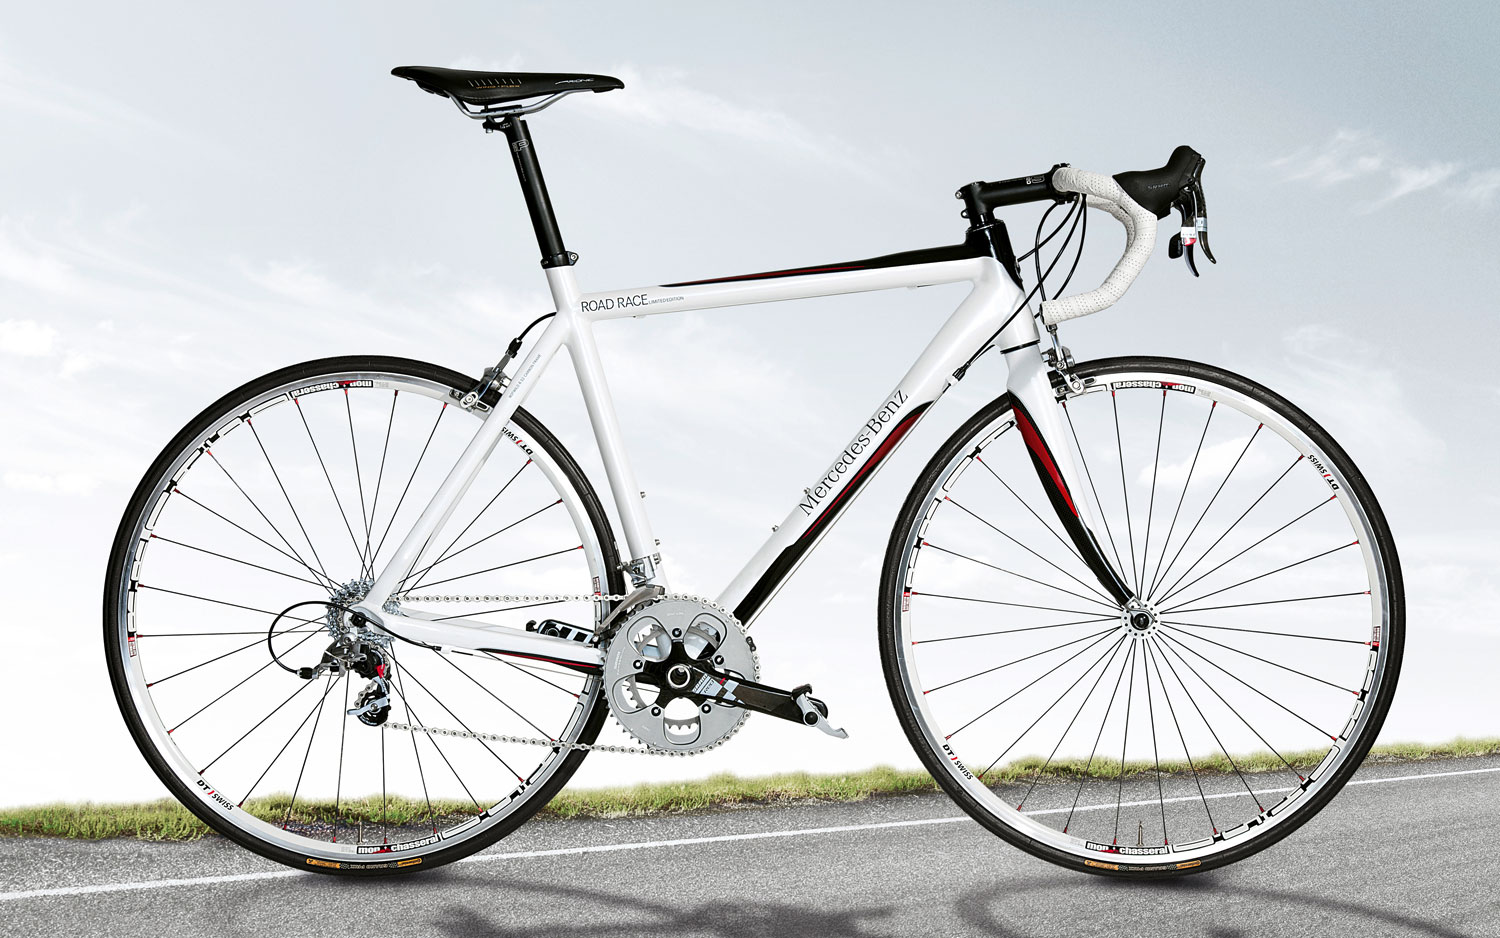 Mercedes Benz Road Bike1